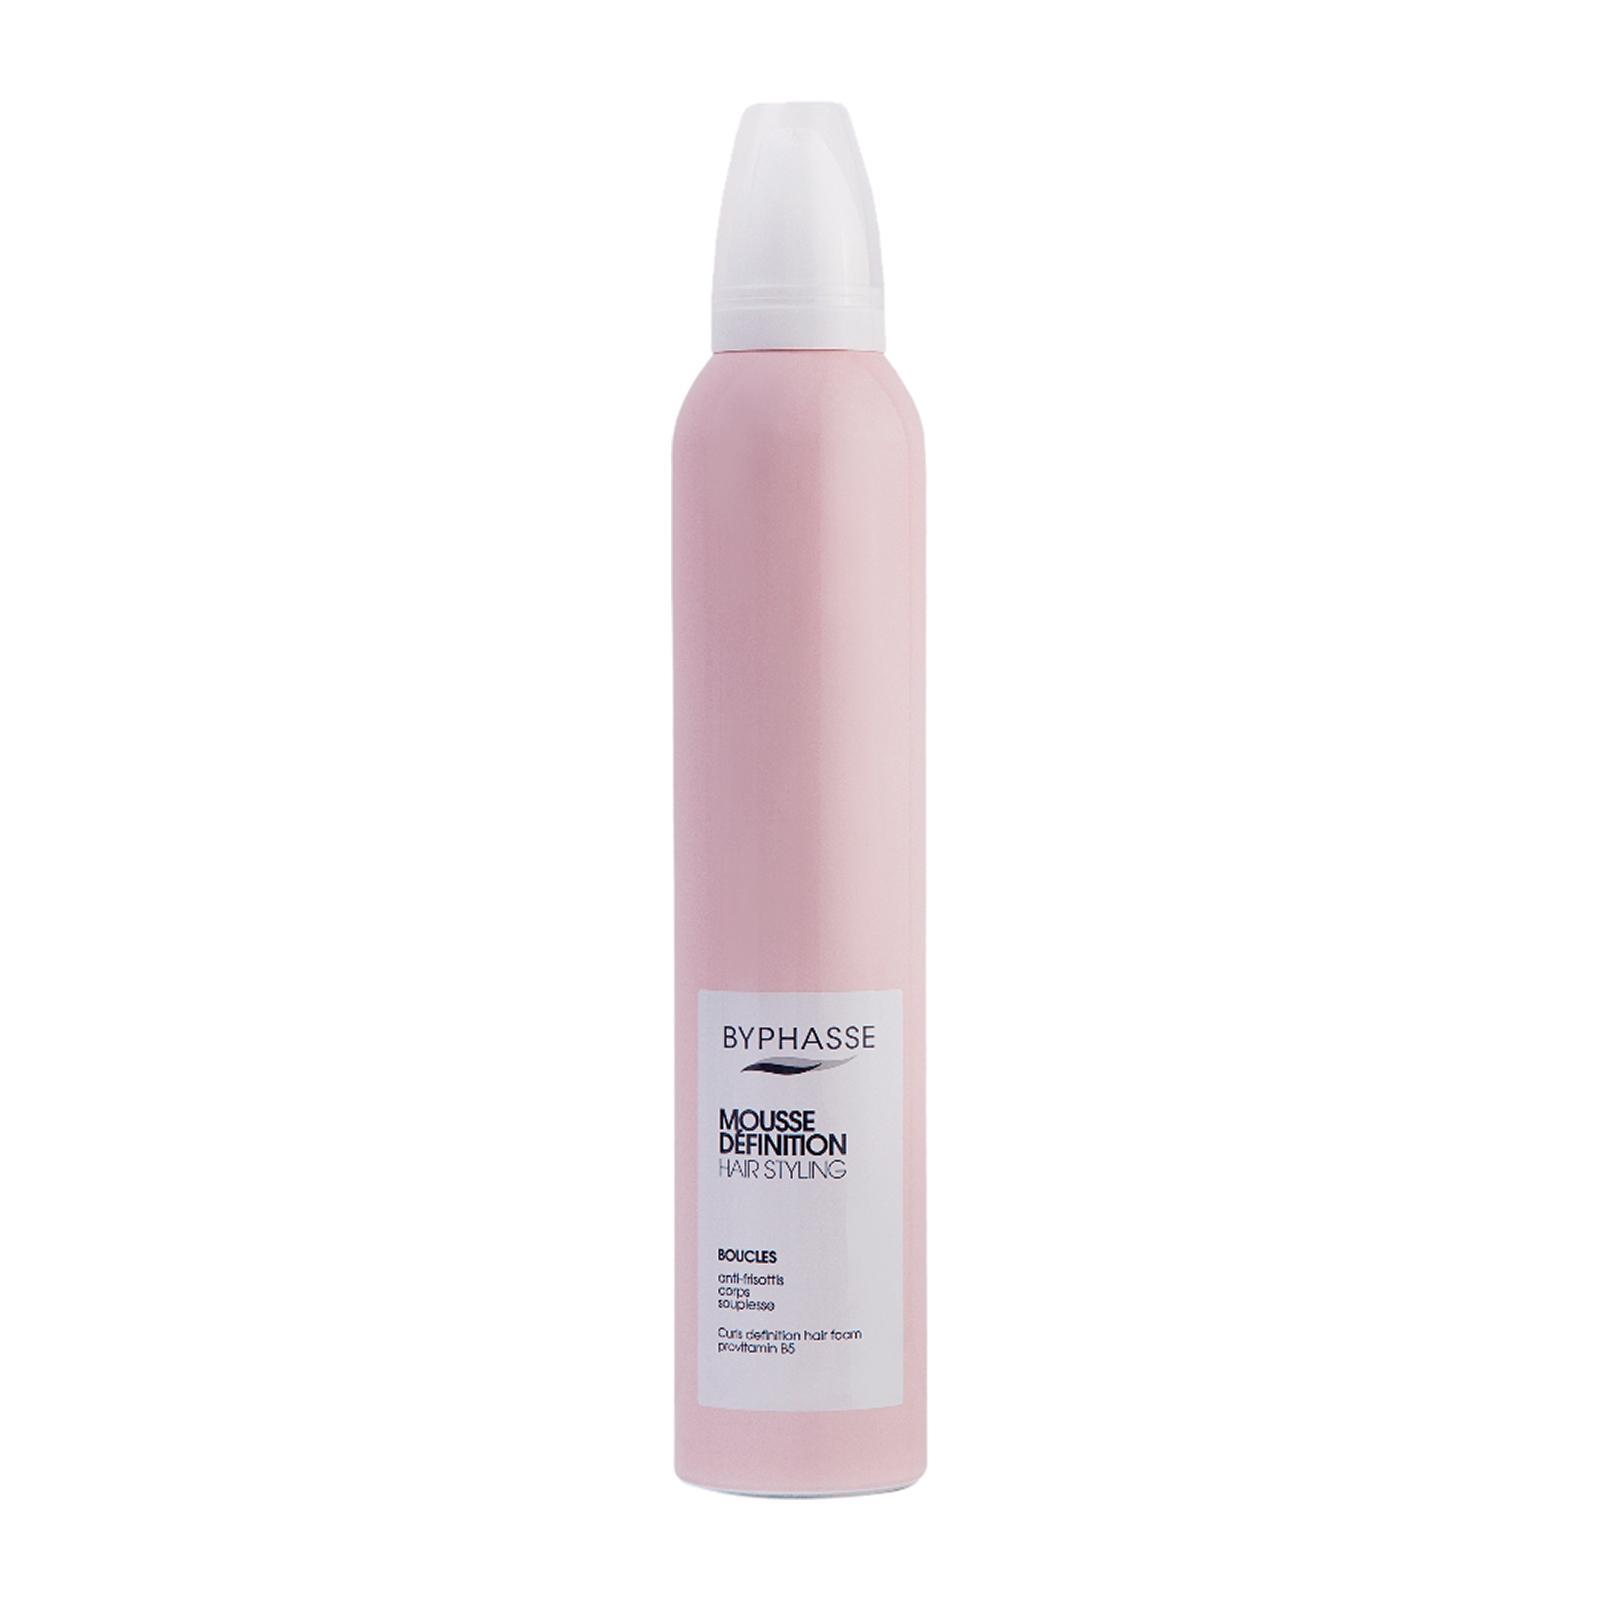 Byphasse Curls Definition Hair Foam Mousse - By Beauty Language